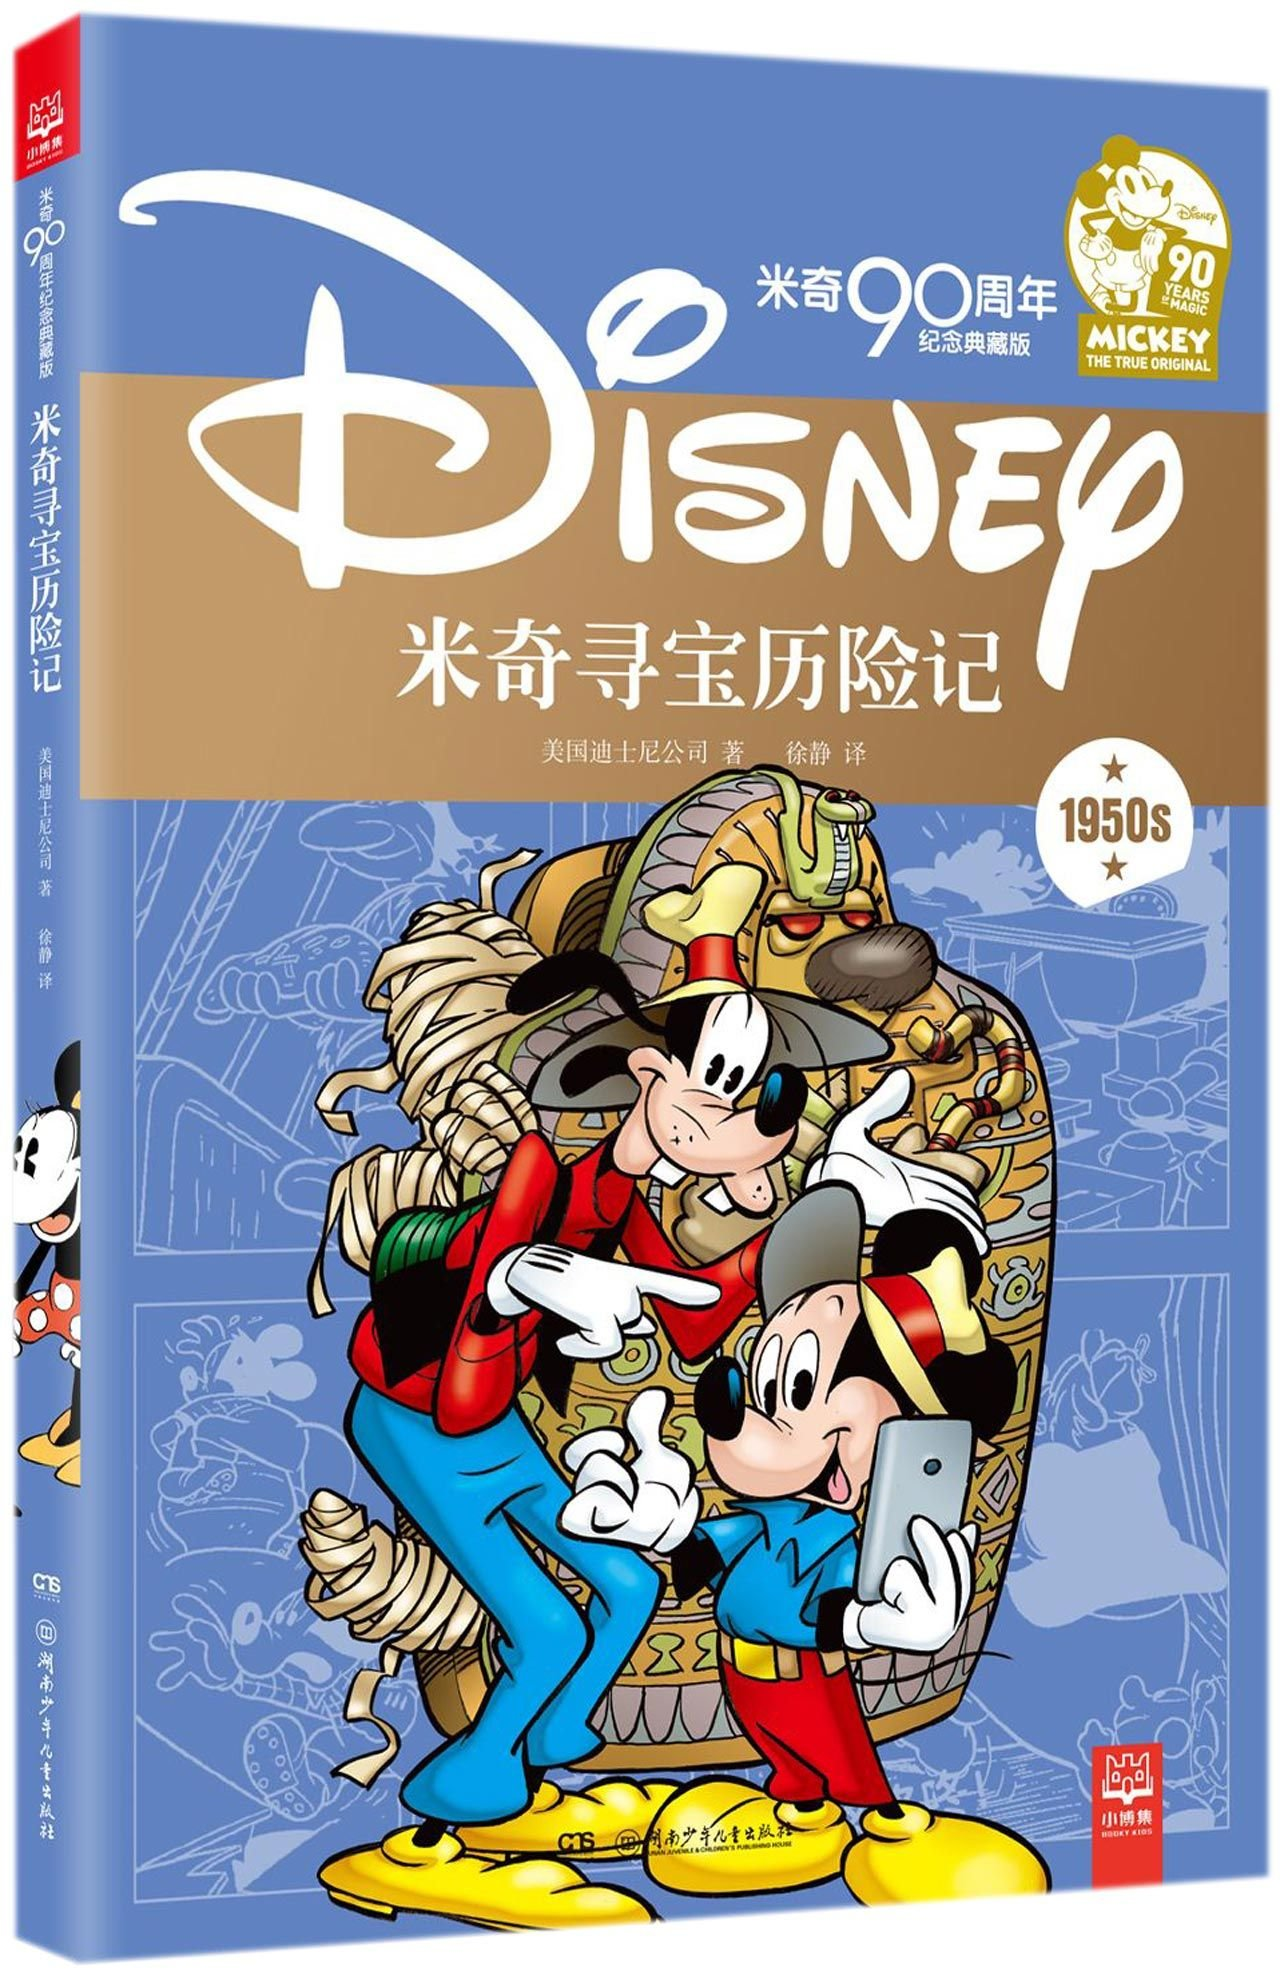 The Treasure Hunt Adventure of Mickey (Walt Disney Mickey Mouse 90th Anniversary Commemorative Edition) (Chinese Edition) PDF